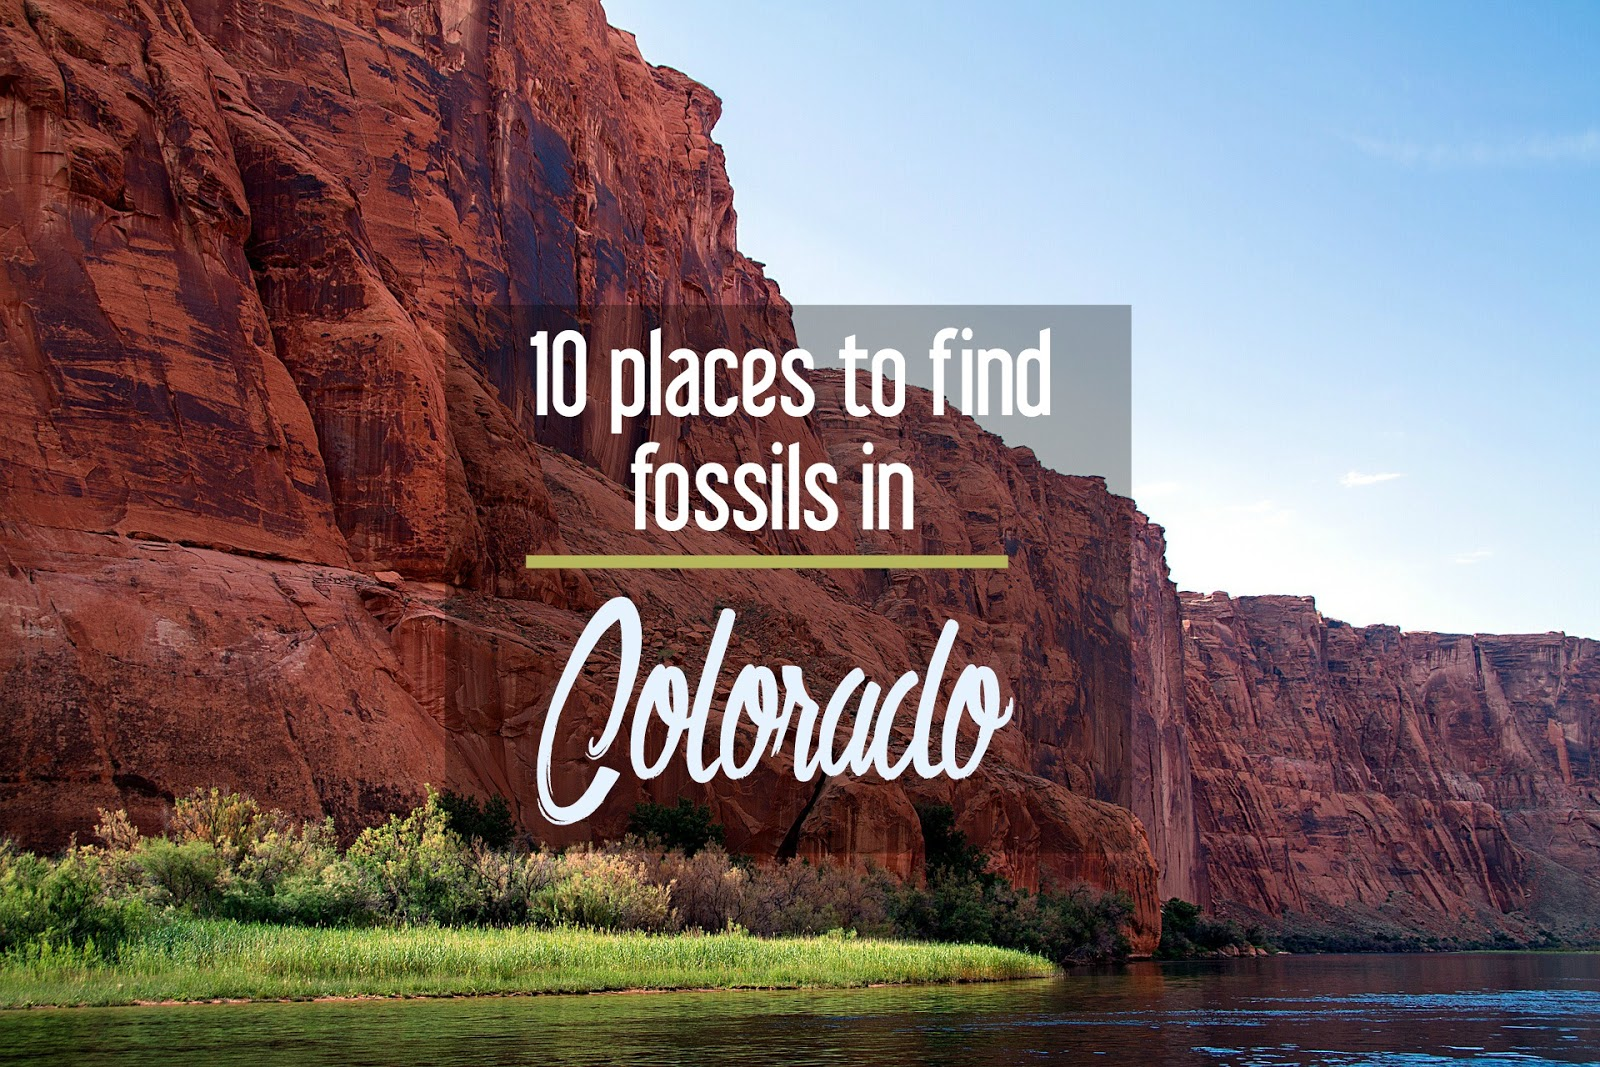 Calling All Paleontologists 10 Places To Go Fossil Hunting In Colorado Cosmos Mariners Destination Unknown Colorado pageant is held in the spring at the ellie caulkins opera house in the denver performing arts co. places to go fossil hunting in colorado